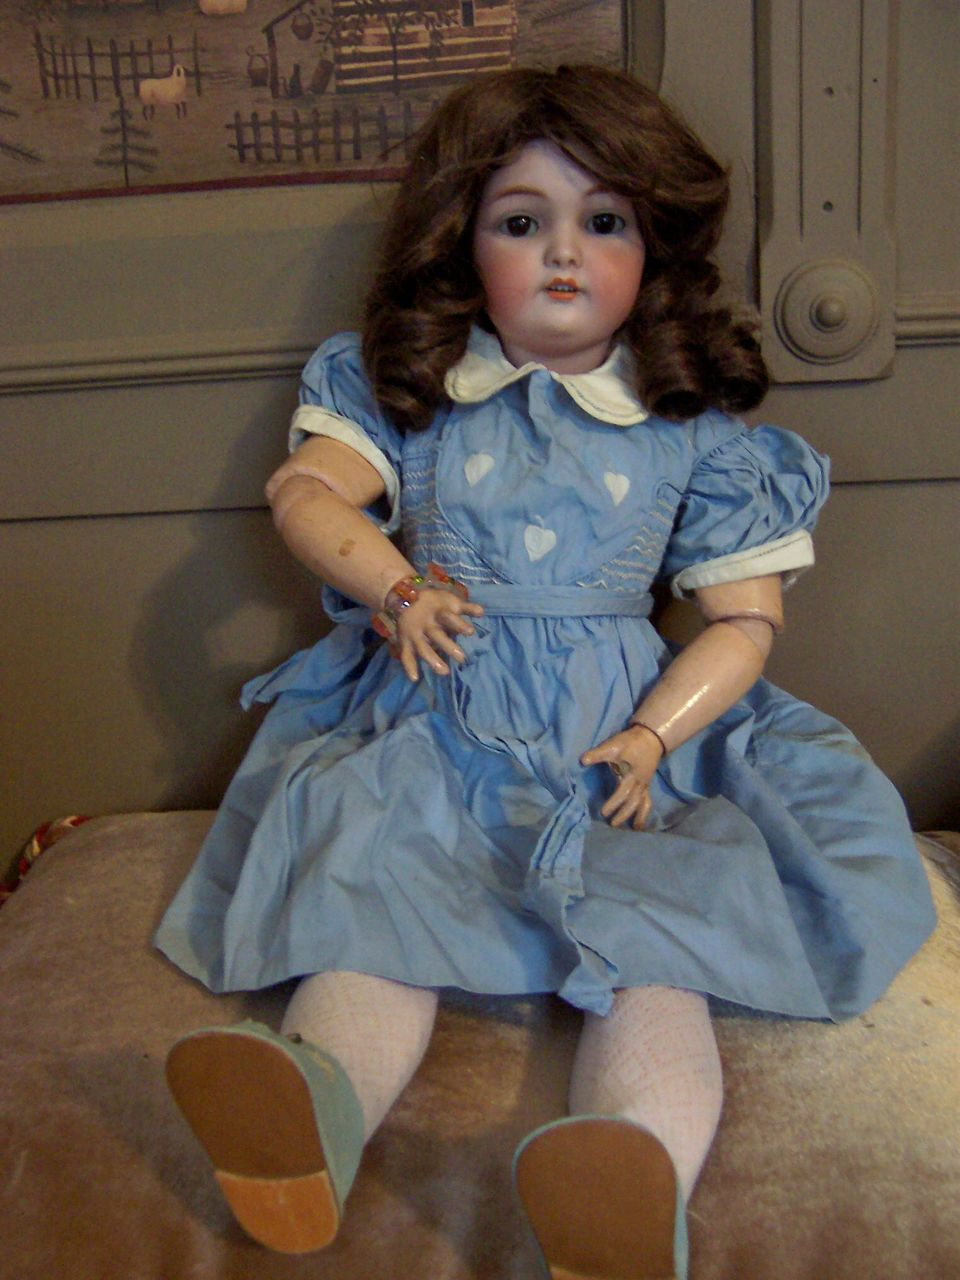 "24"" Simon Halbig/C.M. Bergmann Bisque Head Doll"